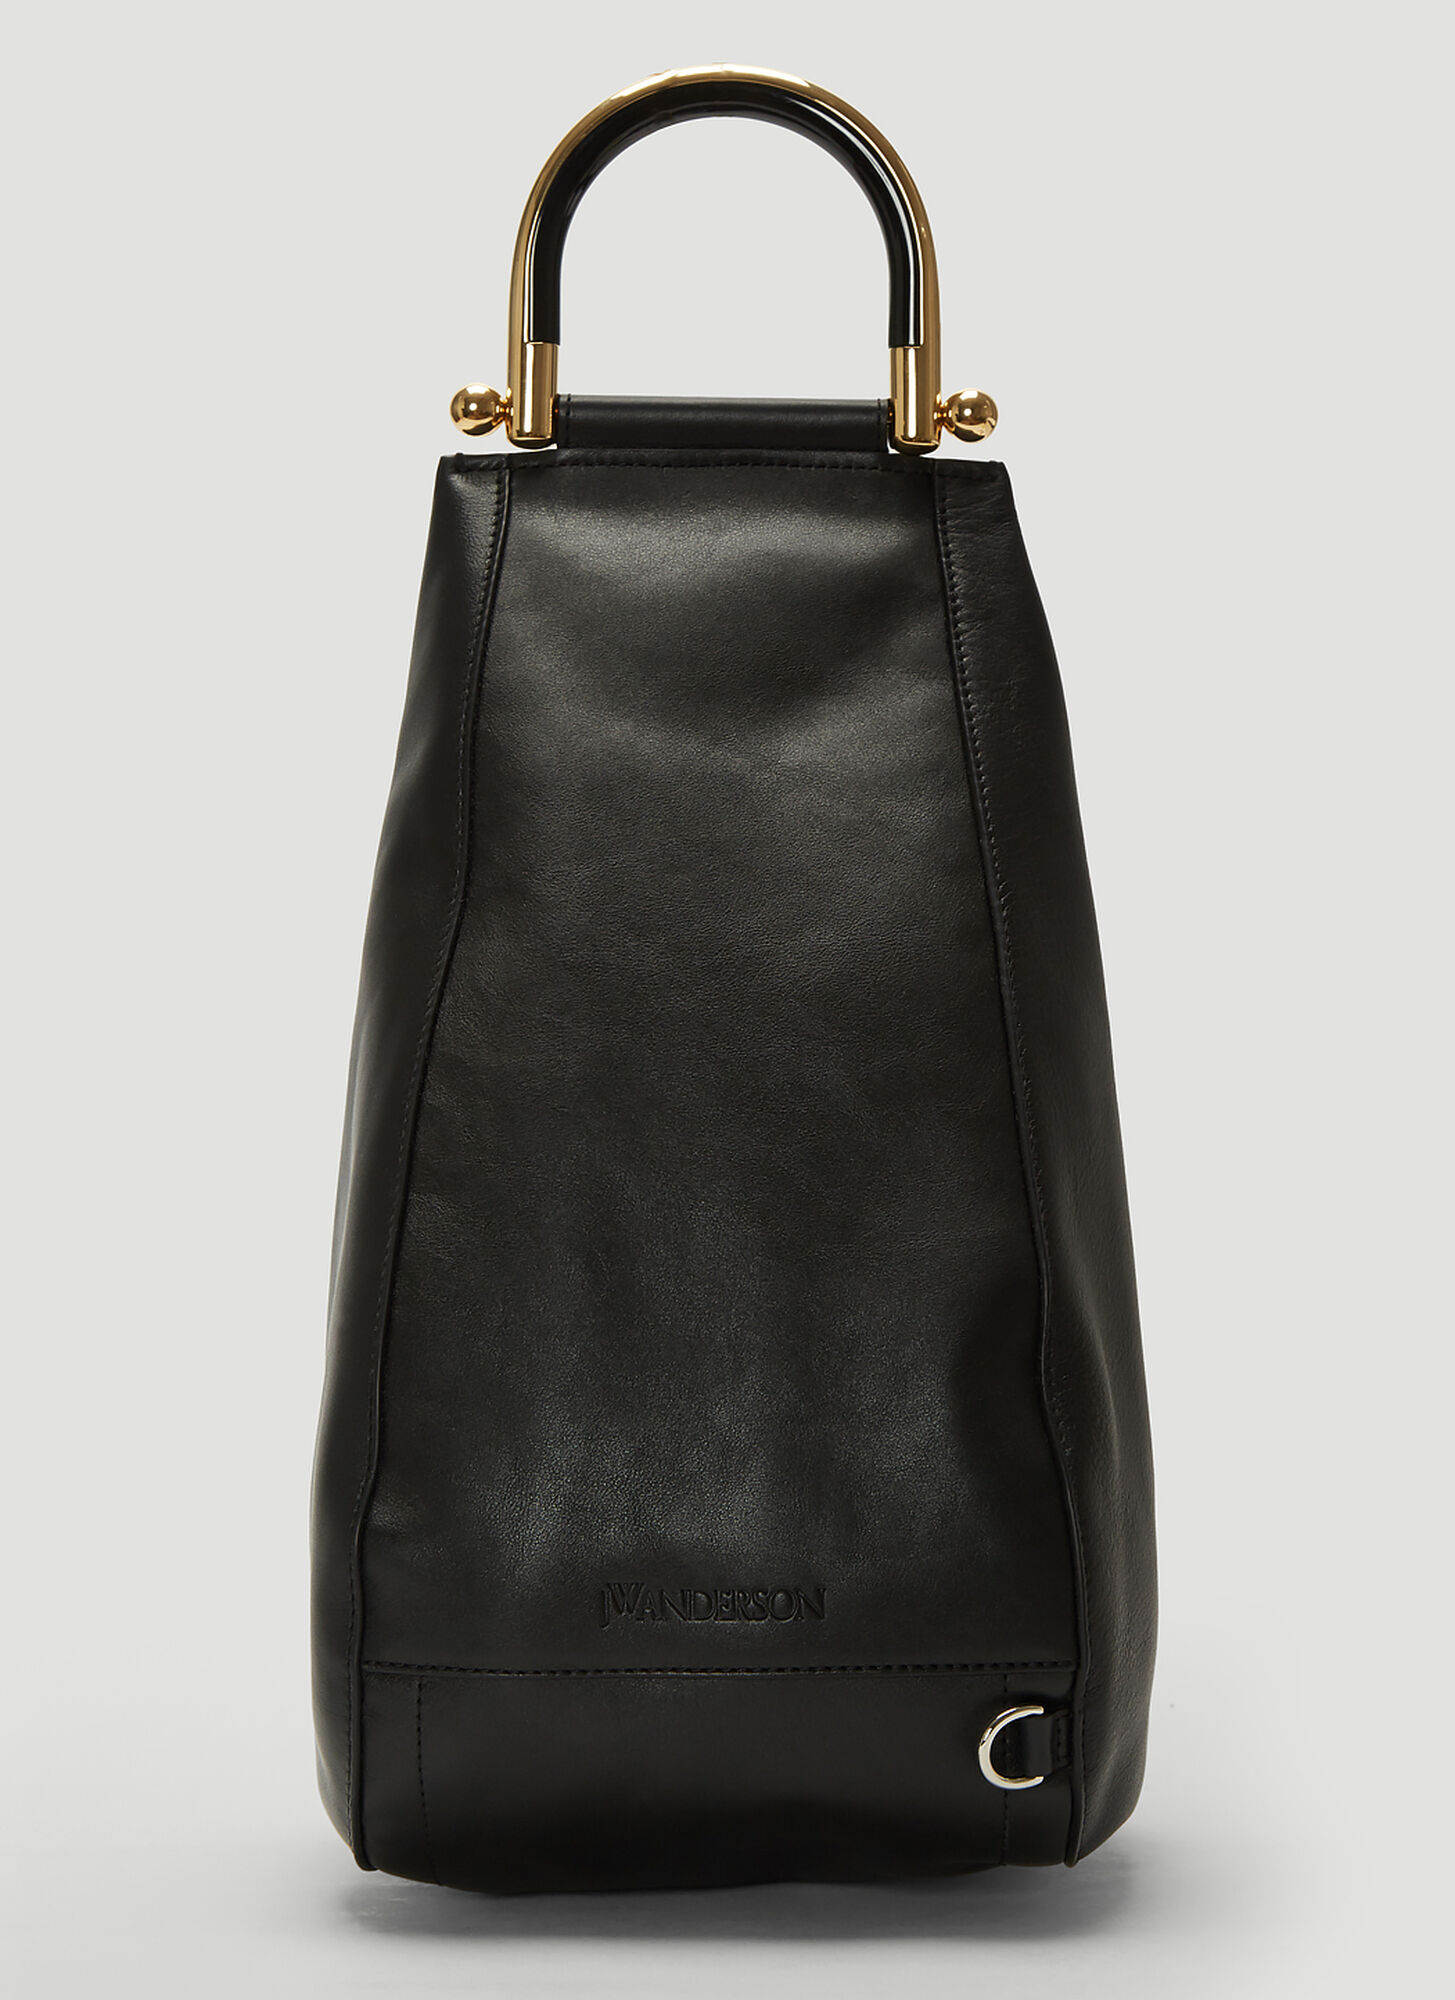 JW Anderson Wedge Shoulder Bag in Black